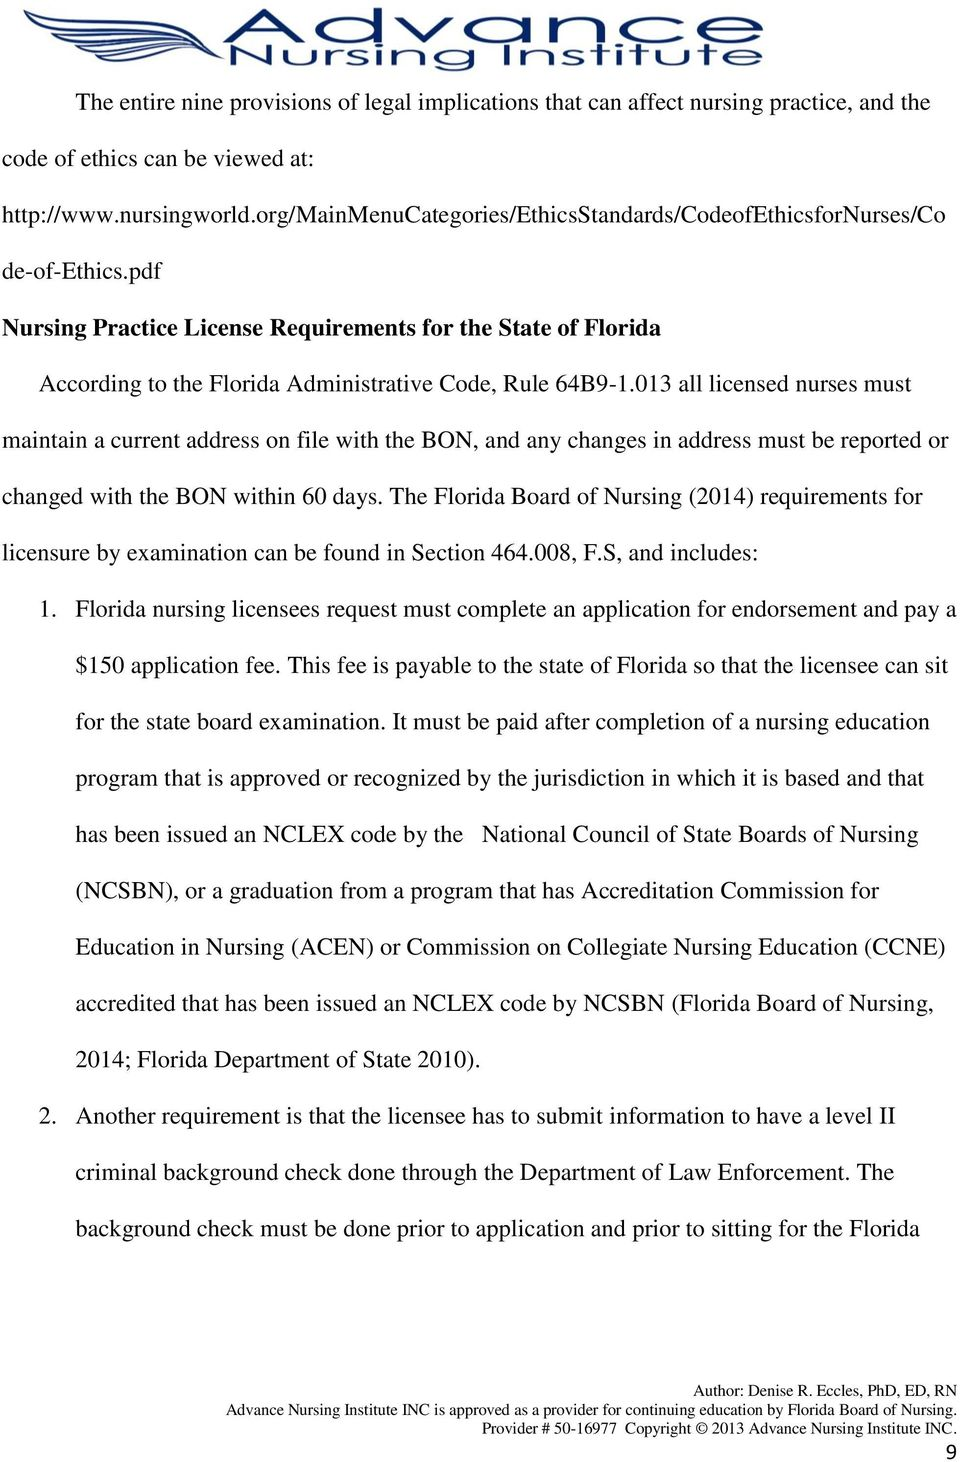 pdf Nursing Practice License Requirements for the State of Florida According to the Florida Administrative Code, Rule 64B9-1.